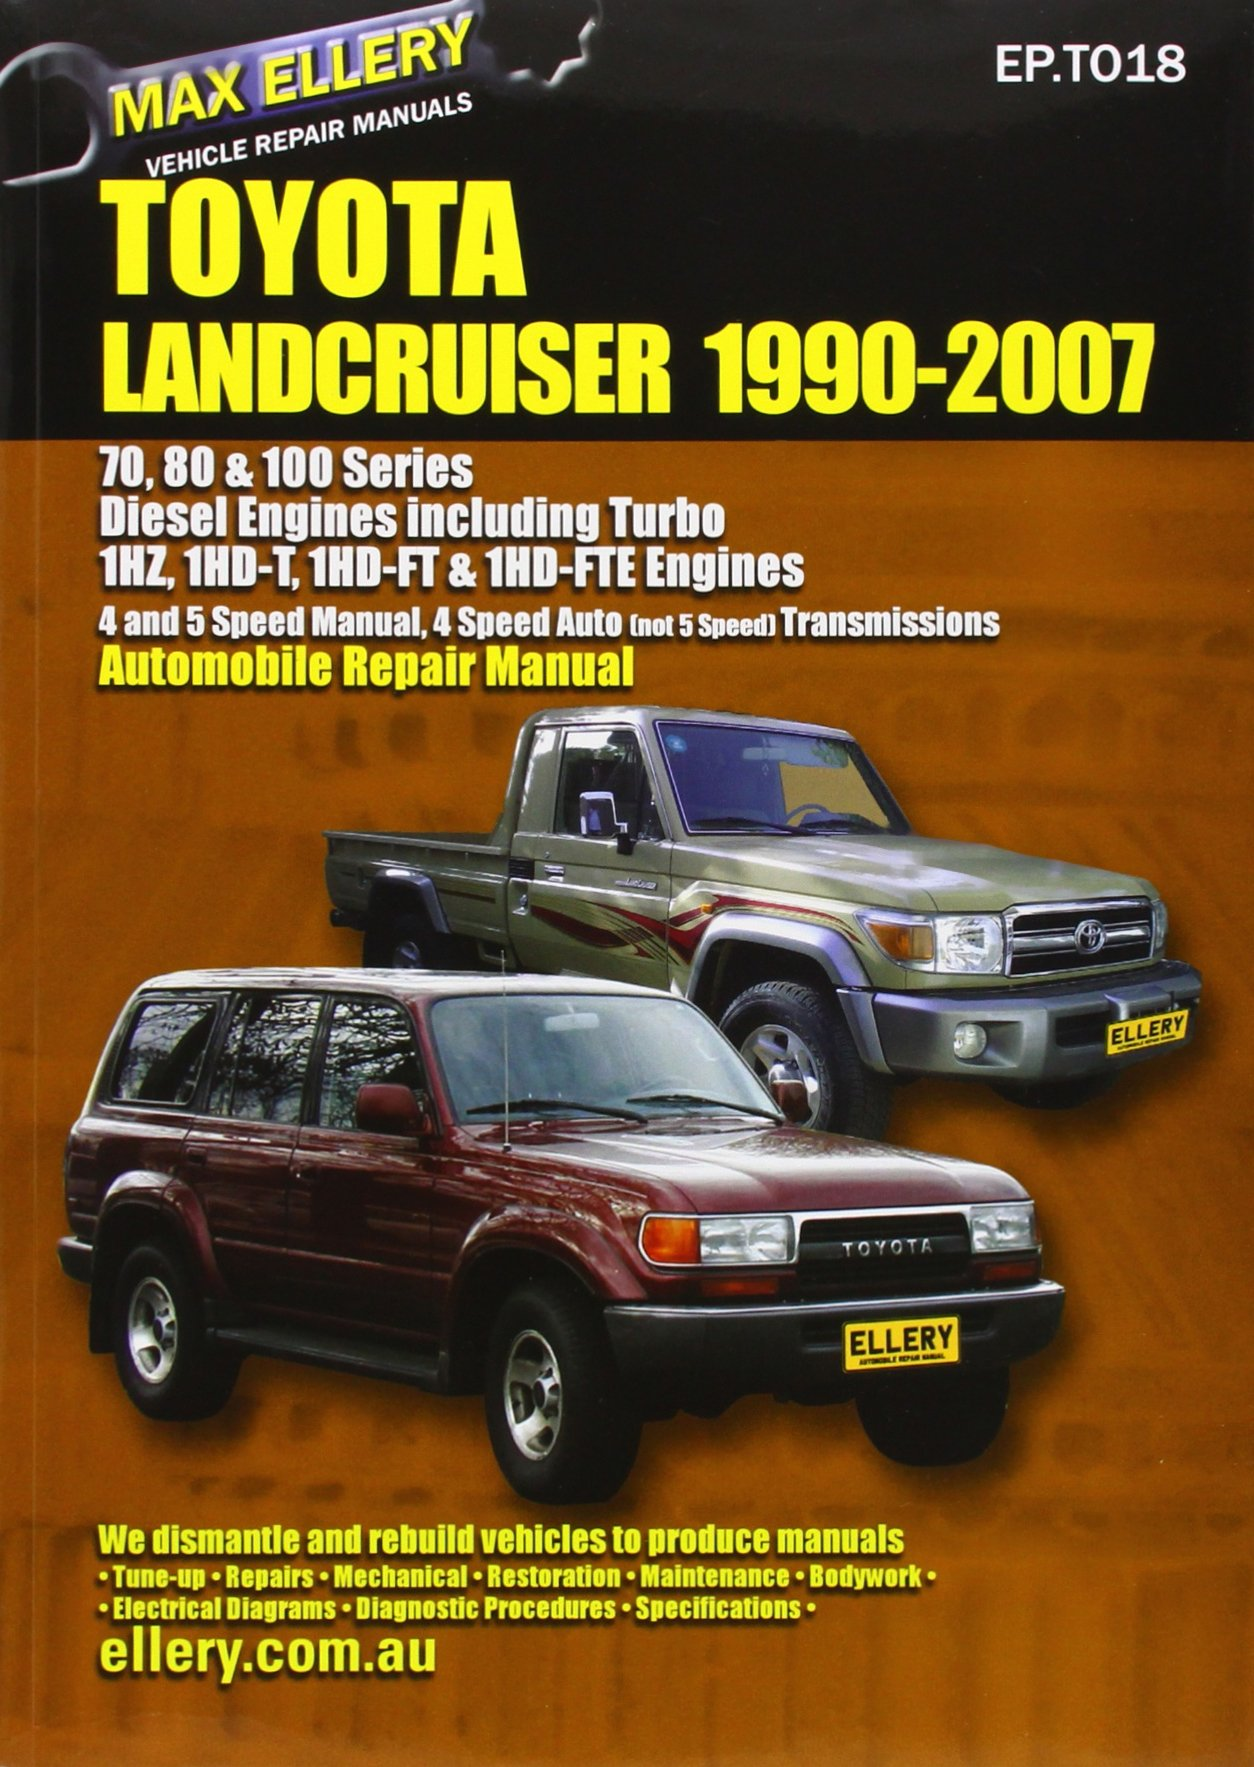 81pyKmdLdNL 80 series landcruiser workshop manual free 100 images toyota landcruiser hj60 electrical wiring diagrams pdf at edmiracle.co